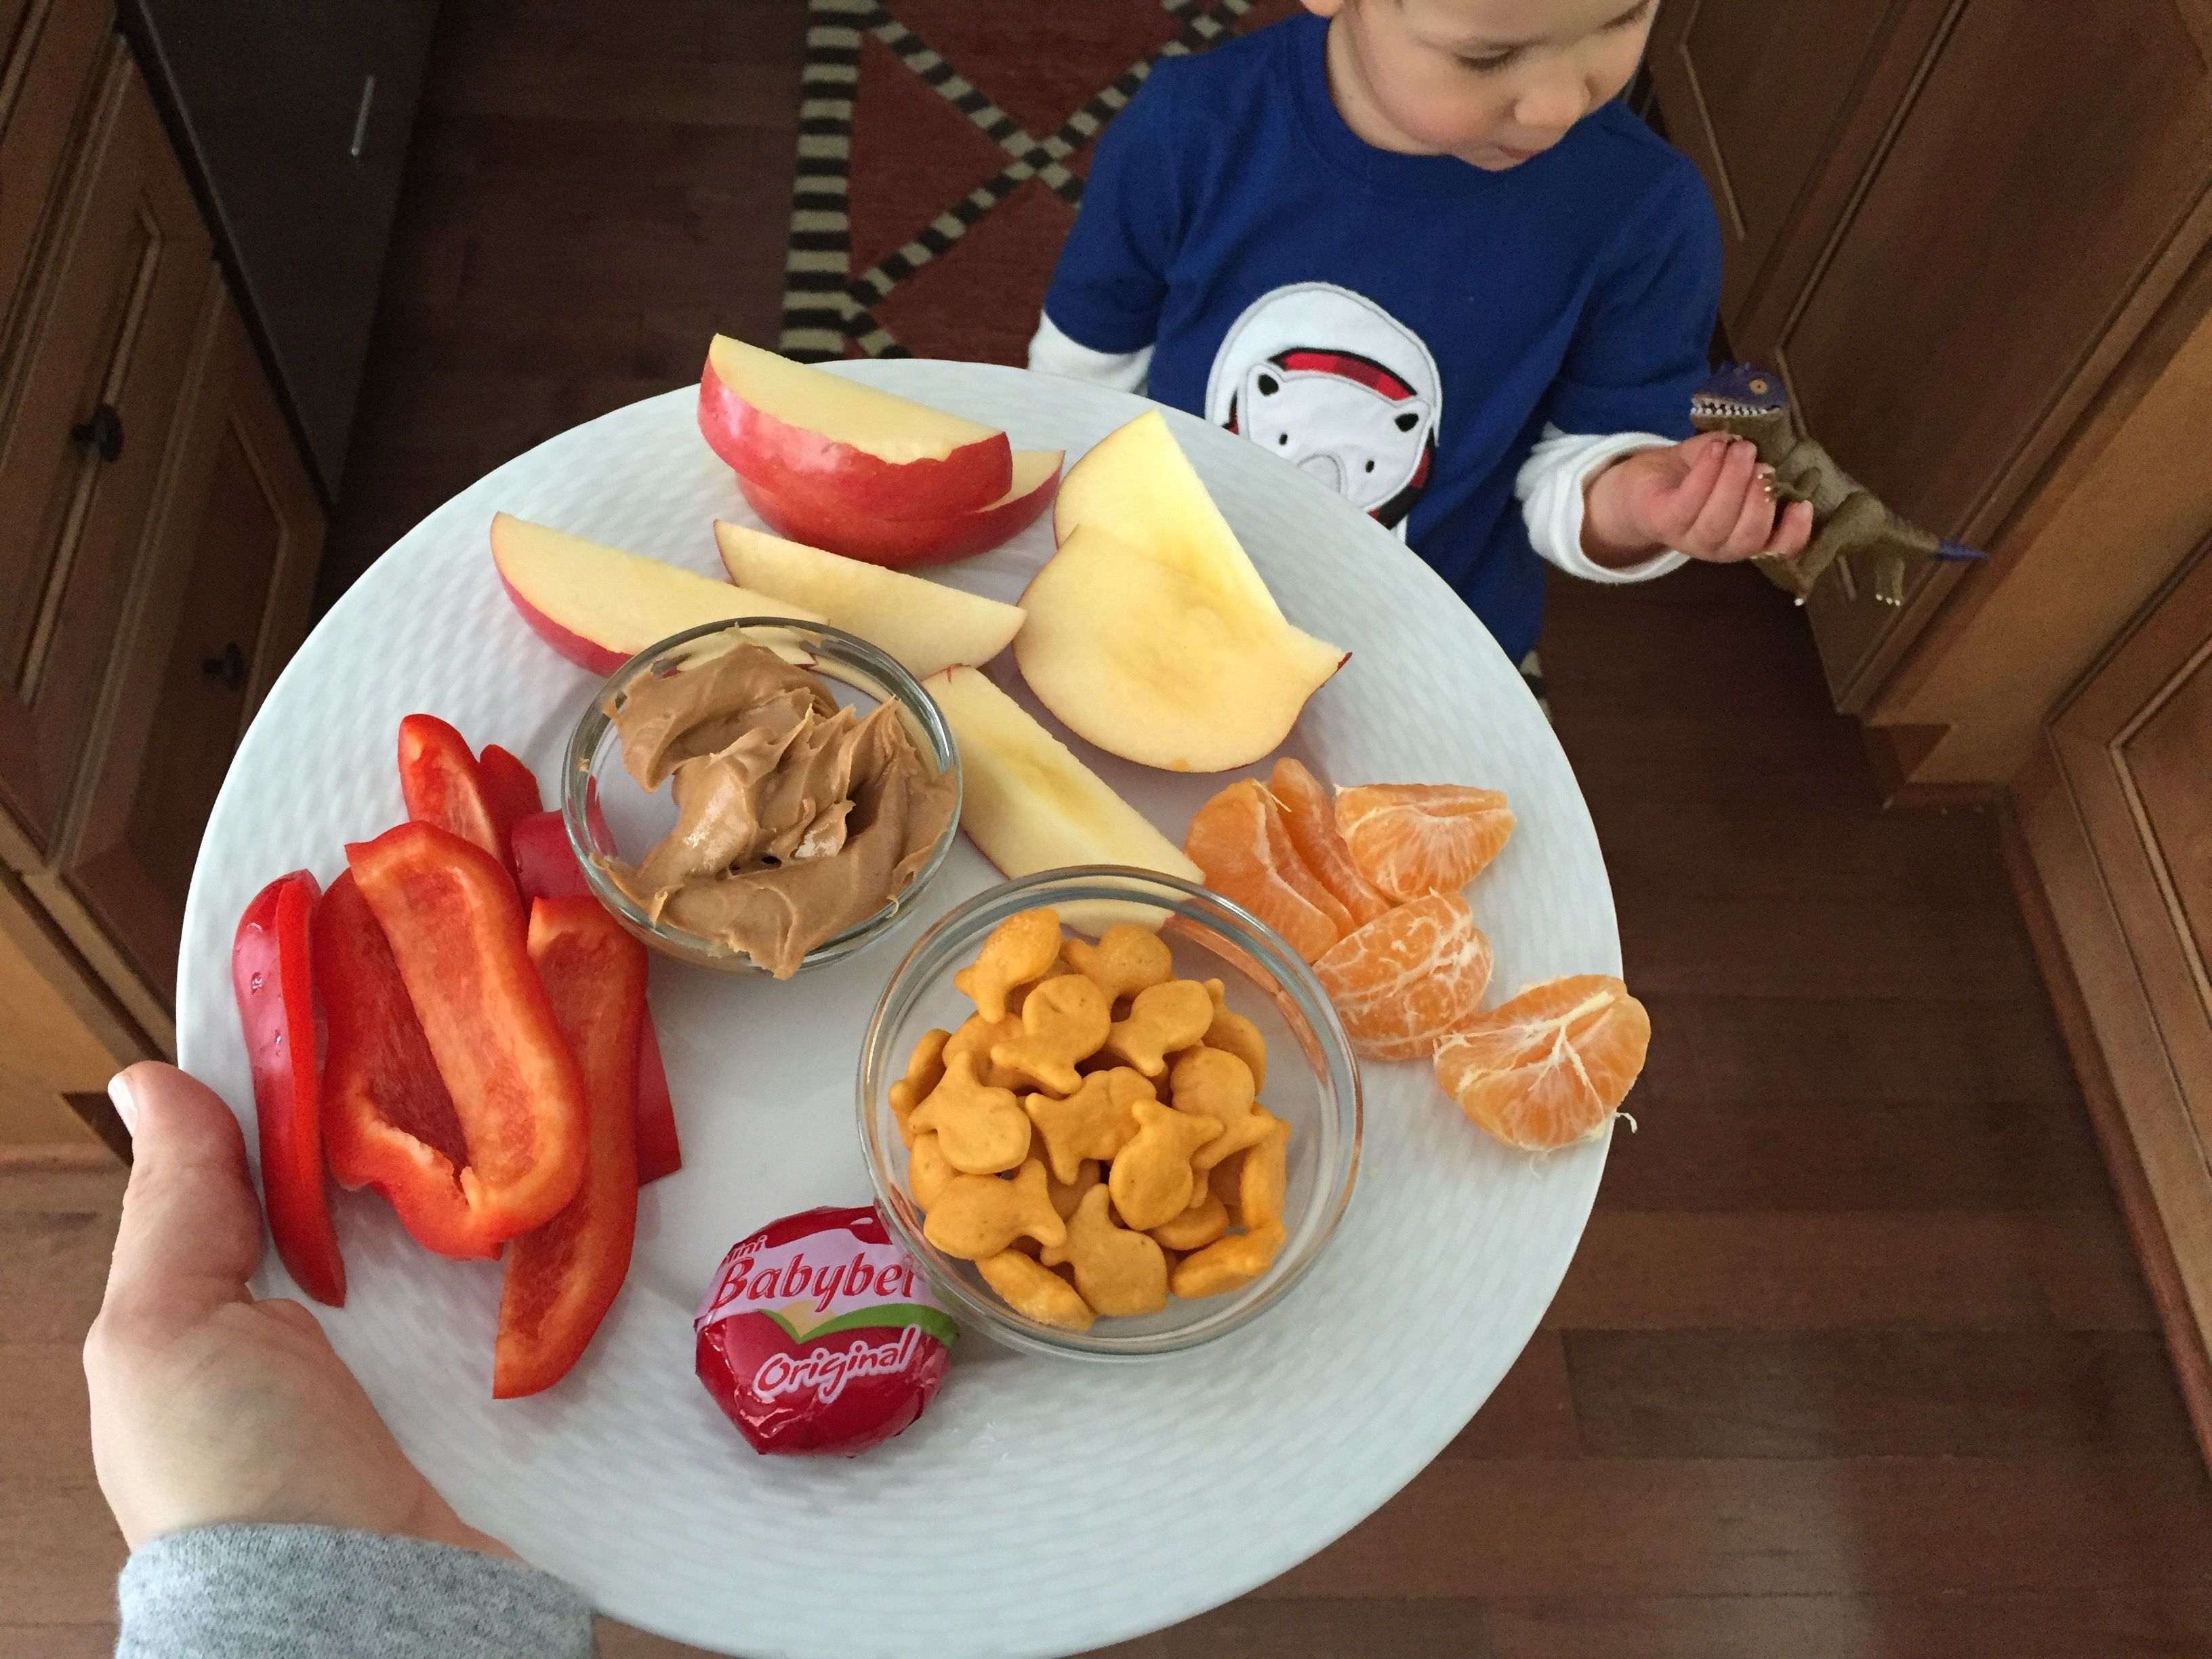 If you've had the luxury of making meals for a toddler you'll quickly appreciate the one constant that comes from creating a toddler feeding routine. Here's a look at what my toddler eats in a day- from breakfast to dinner and snacks included! The biggest difference I've noticed between feeding a baby and feeding a …